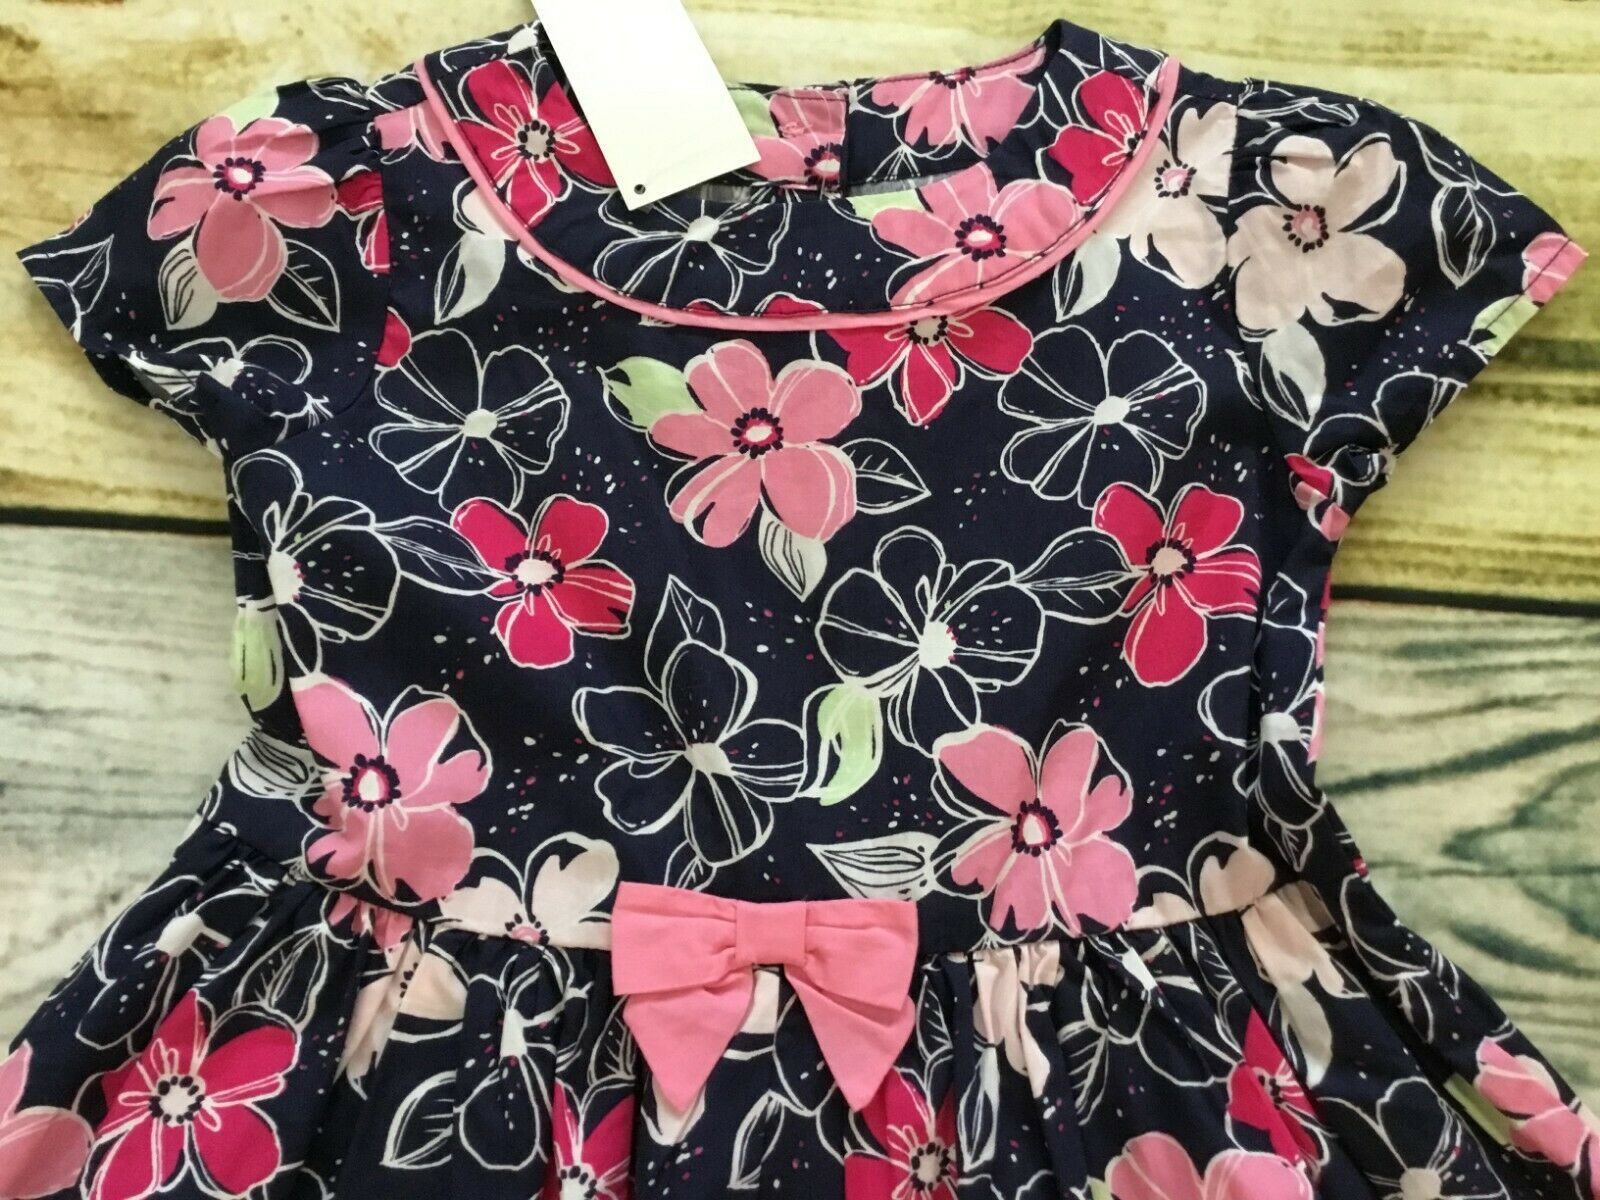 Gymboree 4T Puppy Rainbow Line Flower Floral Dress Tights Hair Outlet NWT